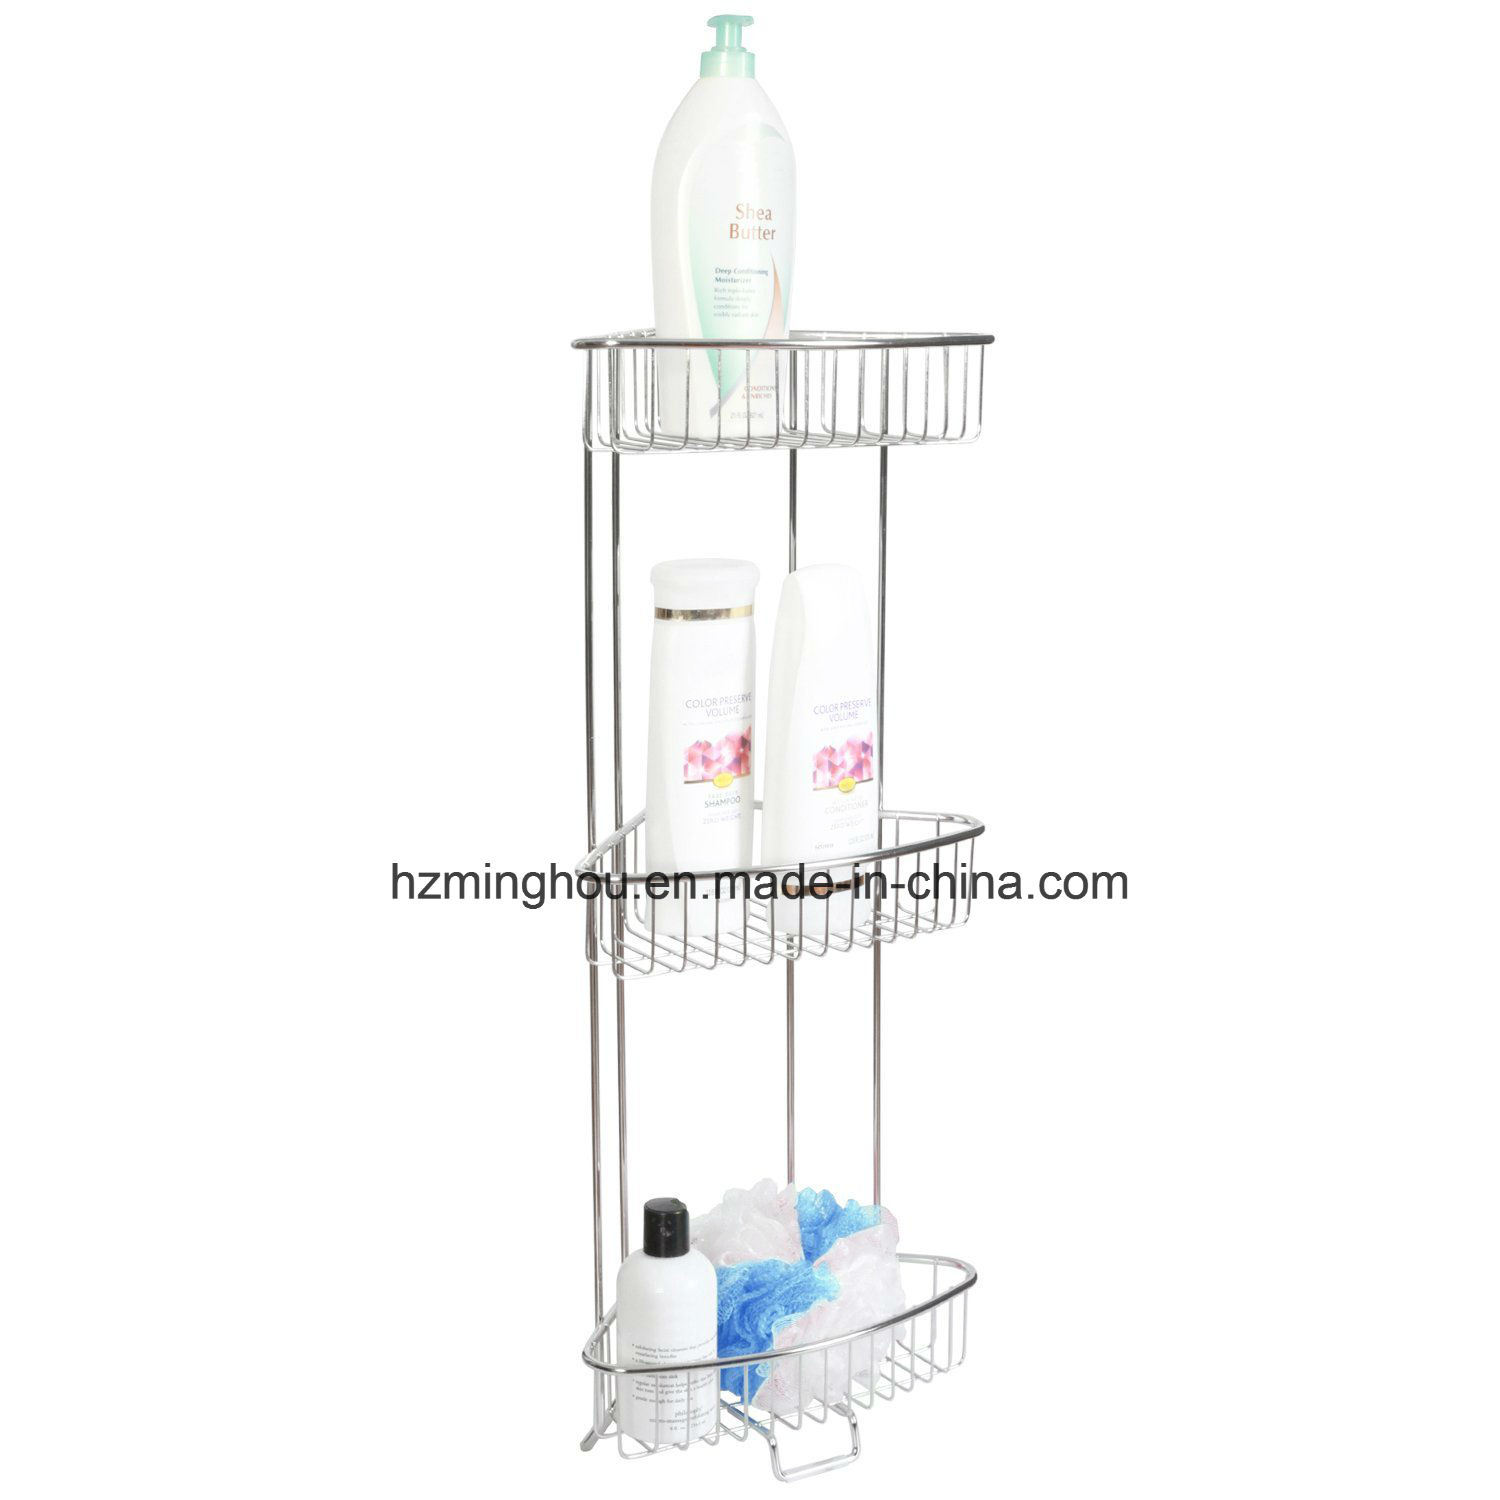 Shower Floor Caddy Wall Mounted Metal Display Shelf Rack